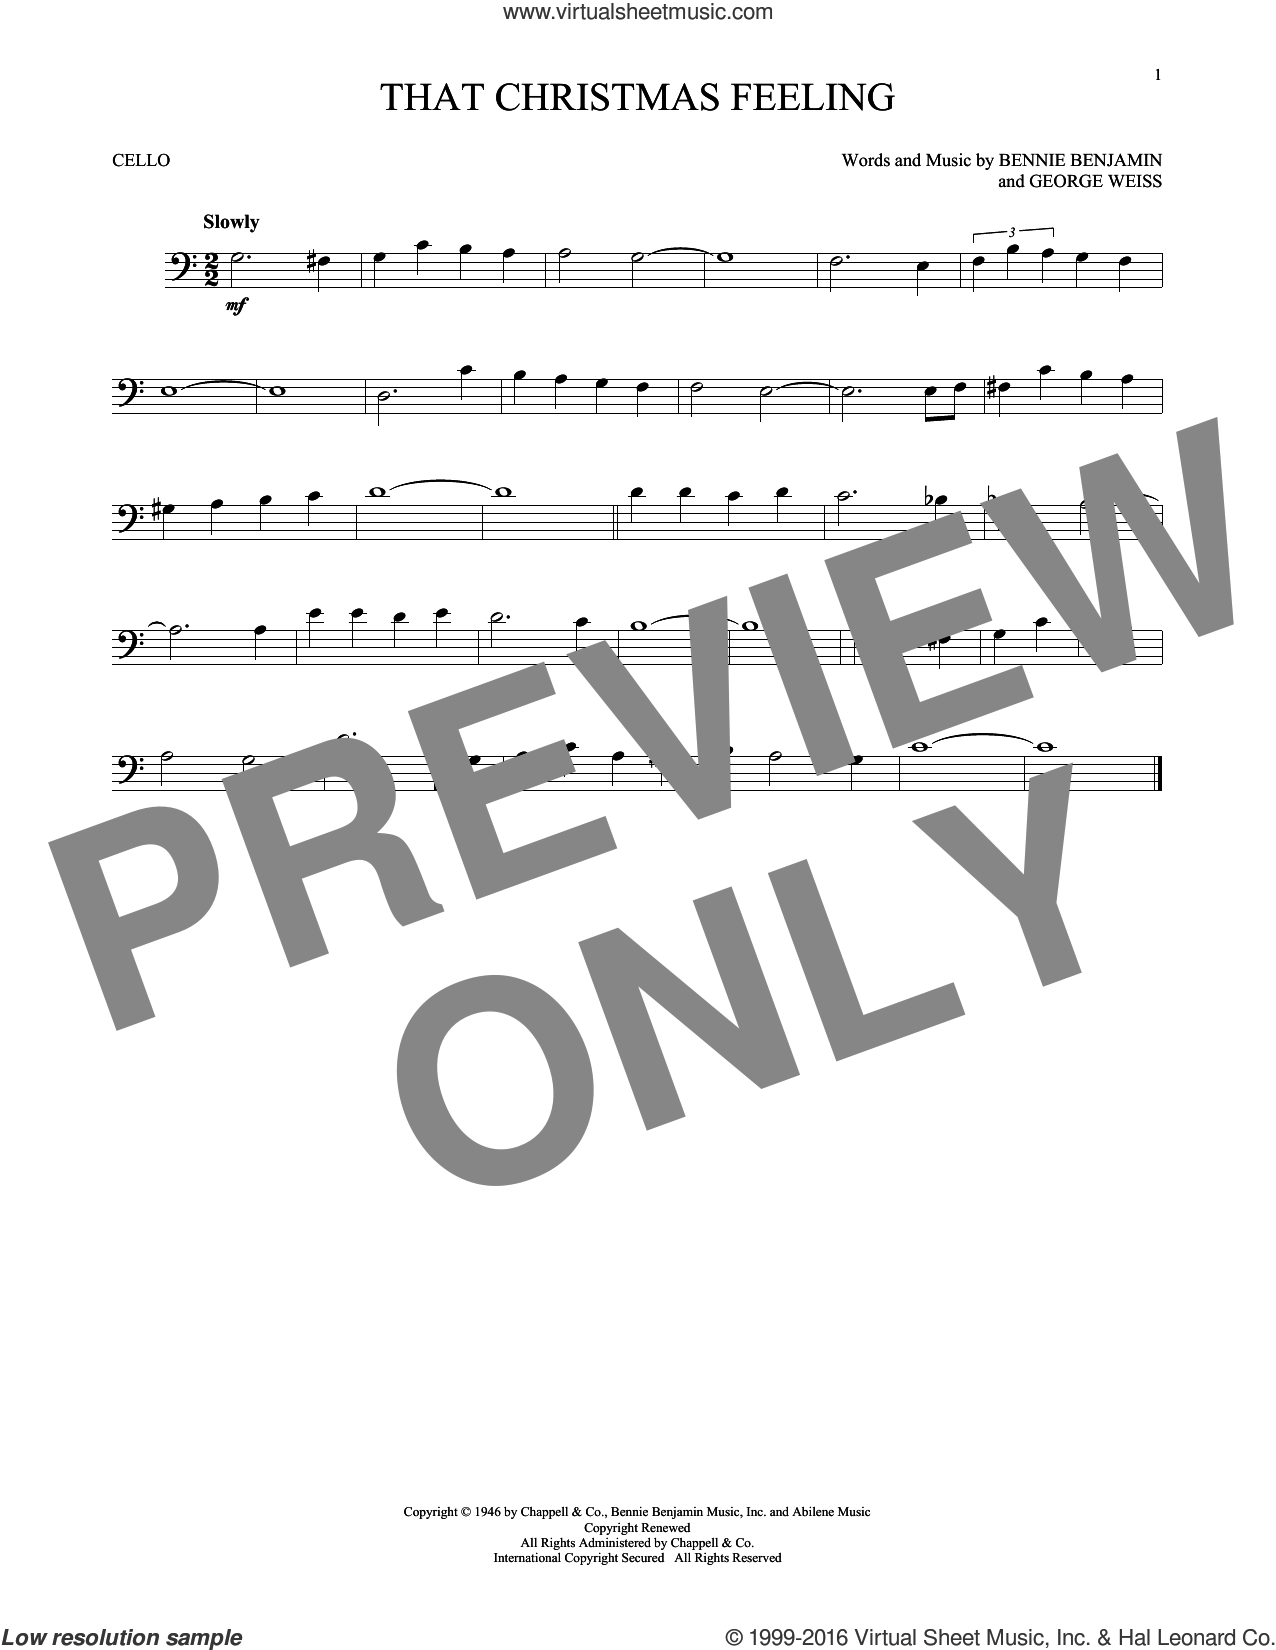 That Christmas Feeling sheet music for cello solo by George David Weiss, Bennie Benjamin and Bennie Benjamin & George Weiss, intermediate skill level